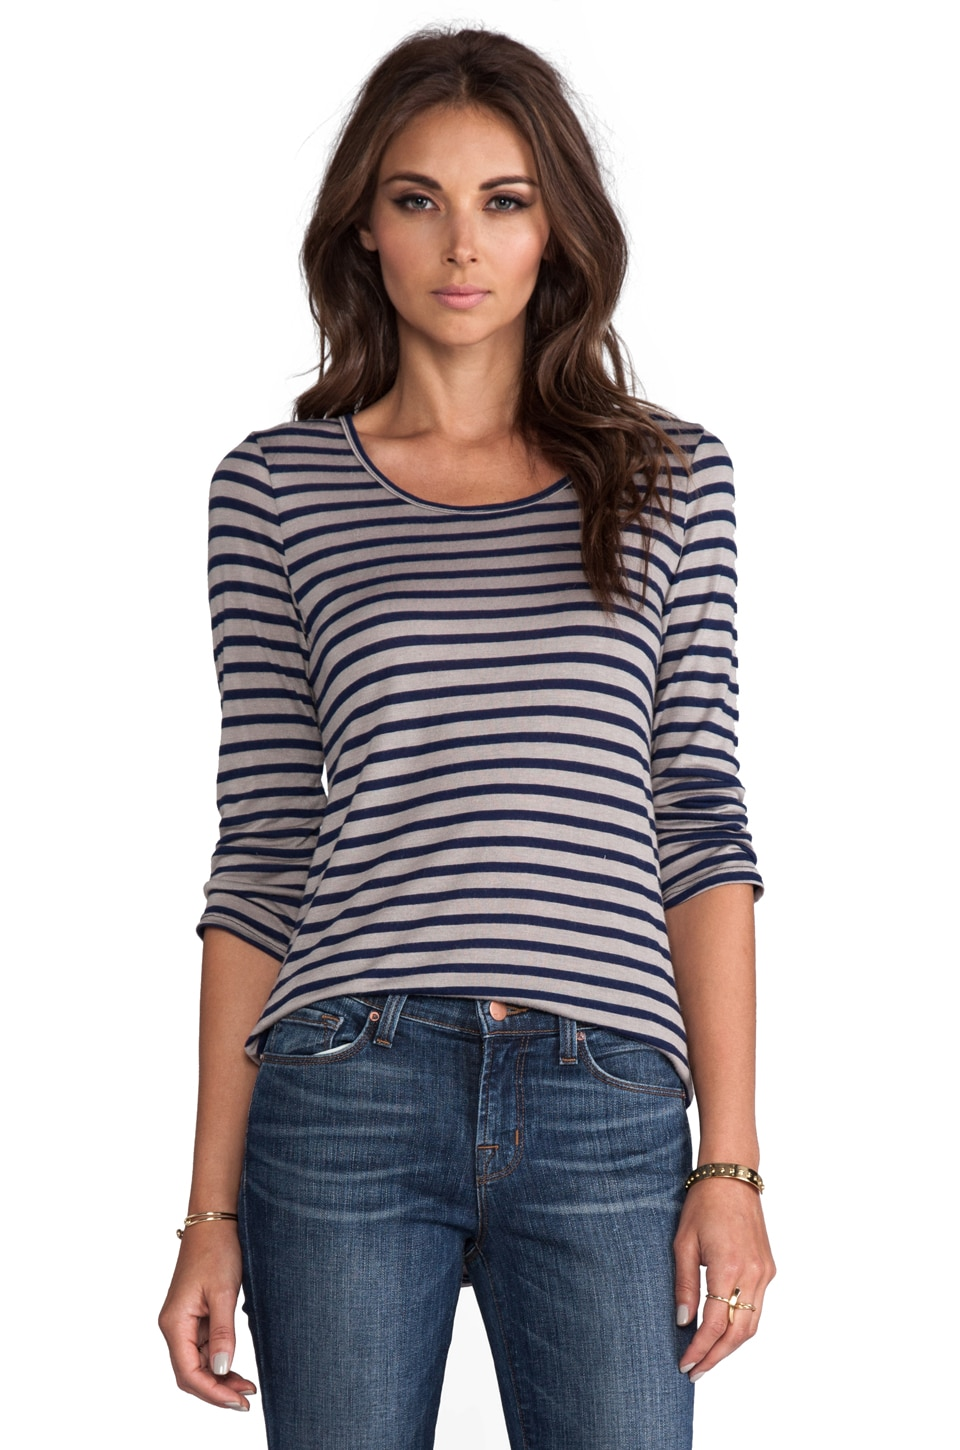 19 4t 3/4 Sleeve T-Shirt in Grey/Navy Stripe